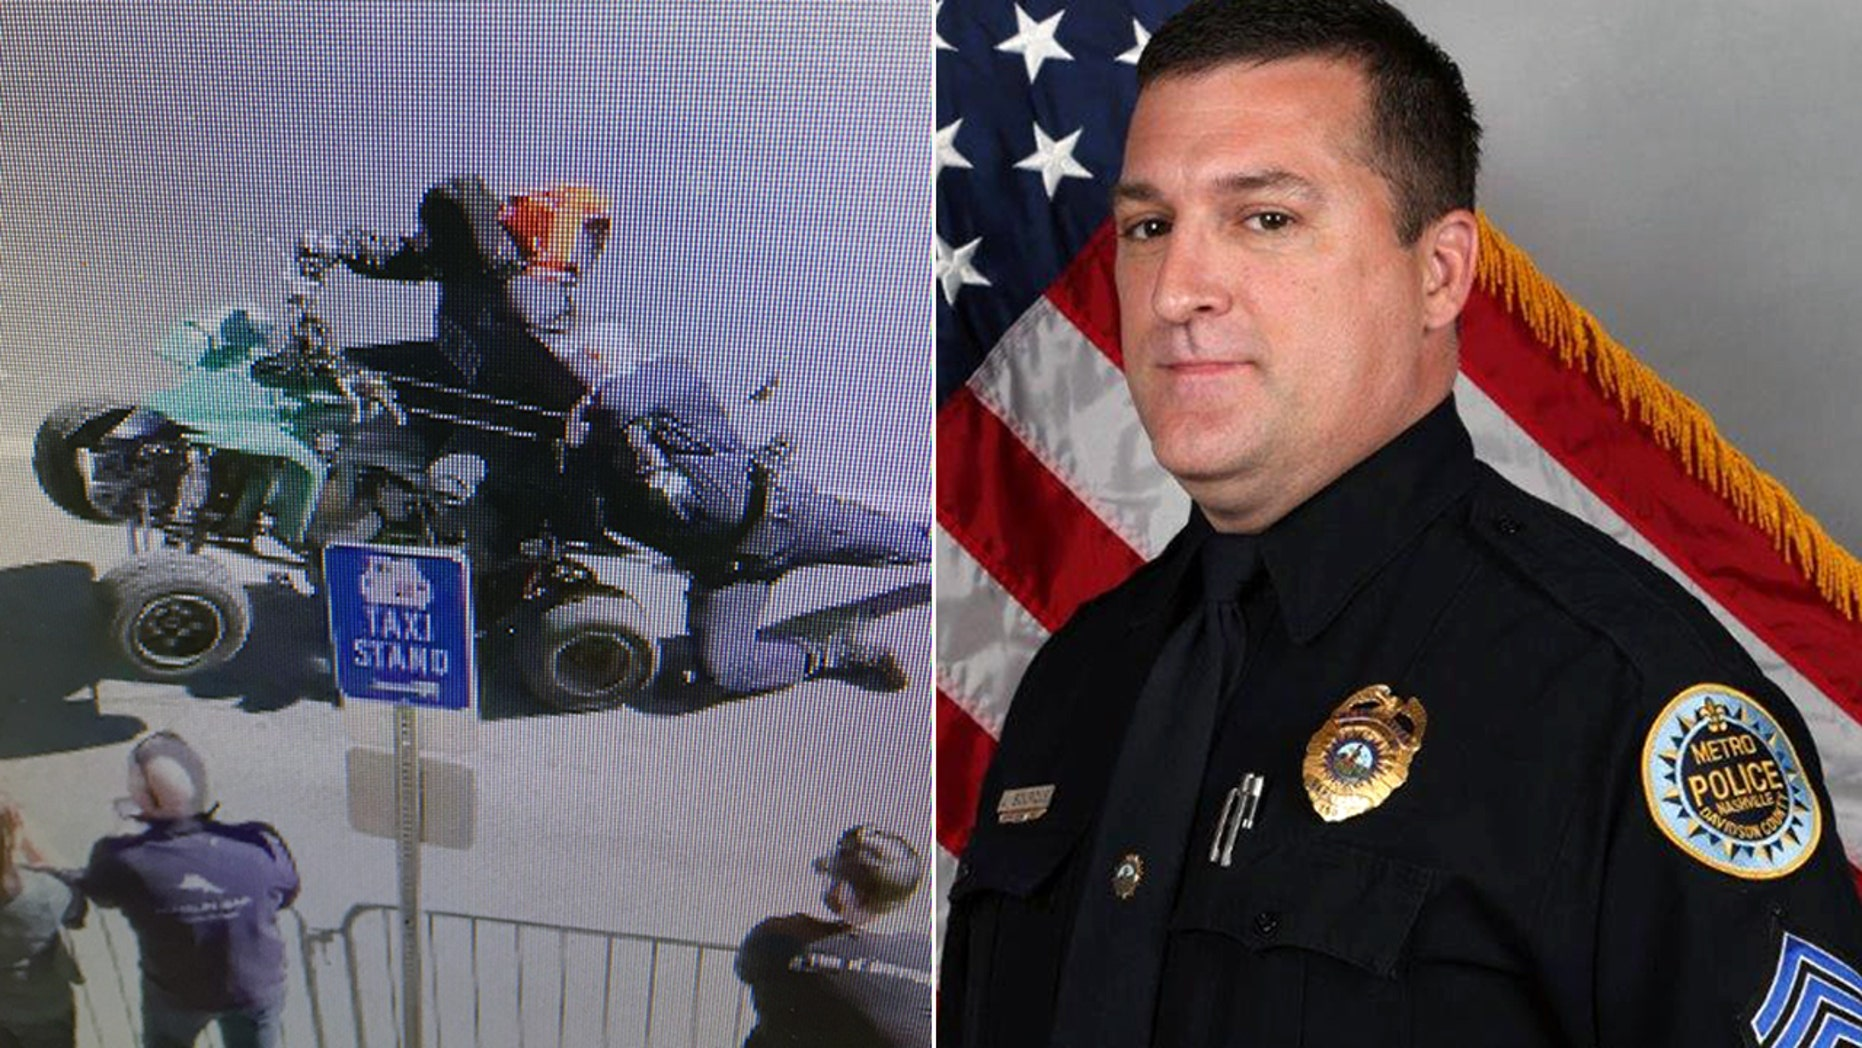 Sgt. John Bourque, right, suffered minor injuries when he was struck and dragged by a four-wheeler